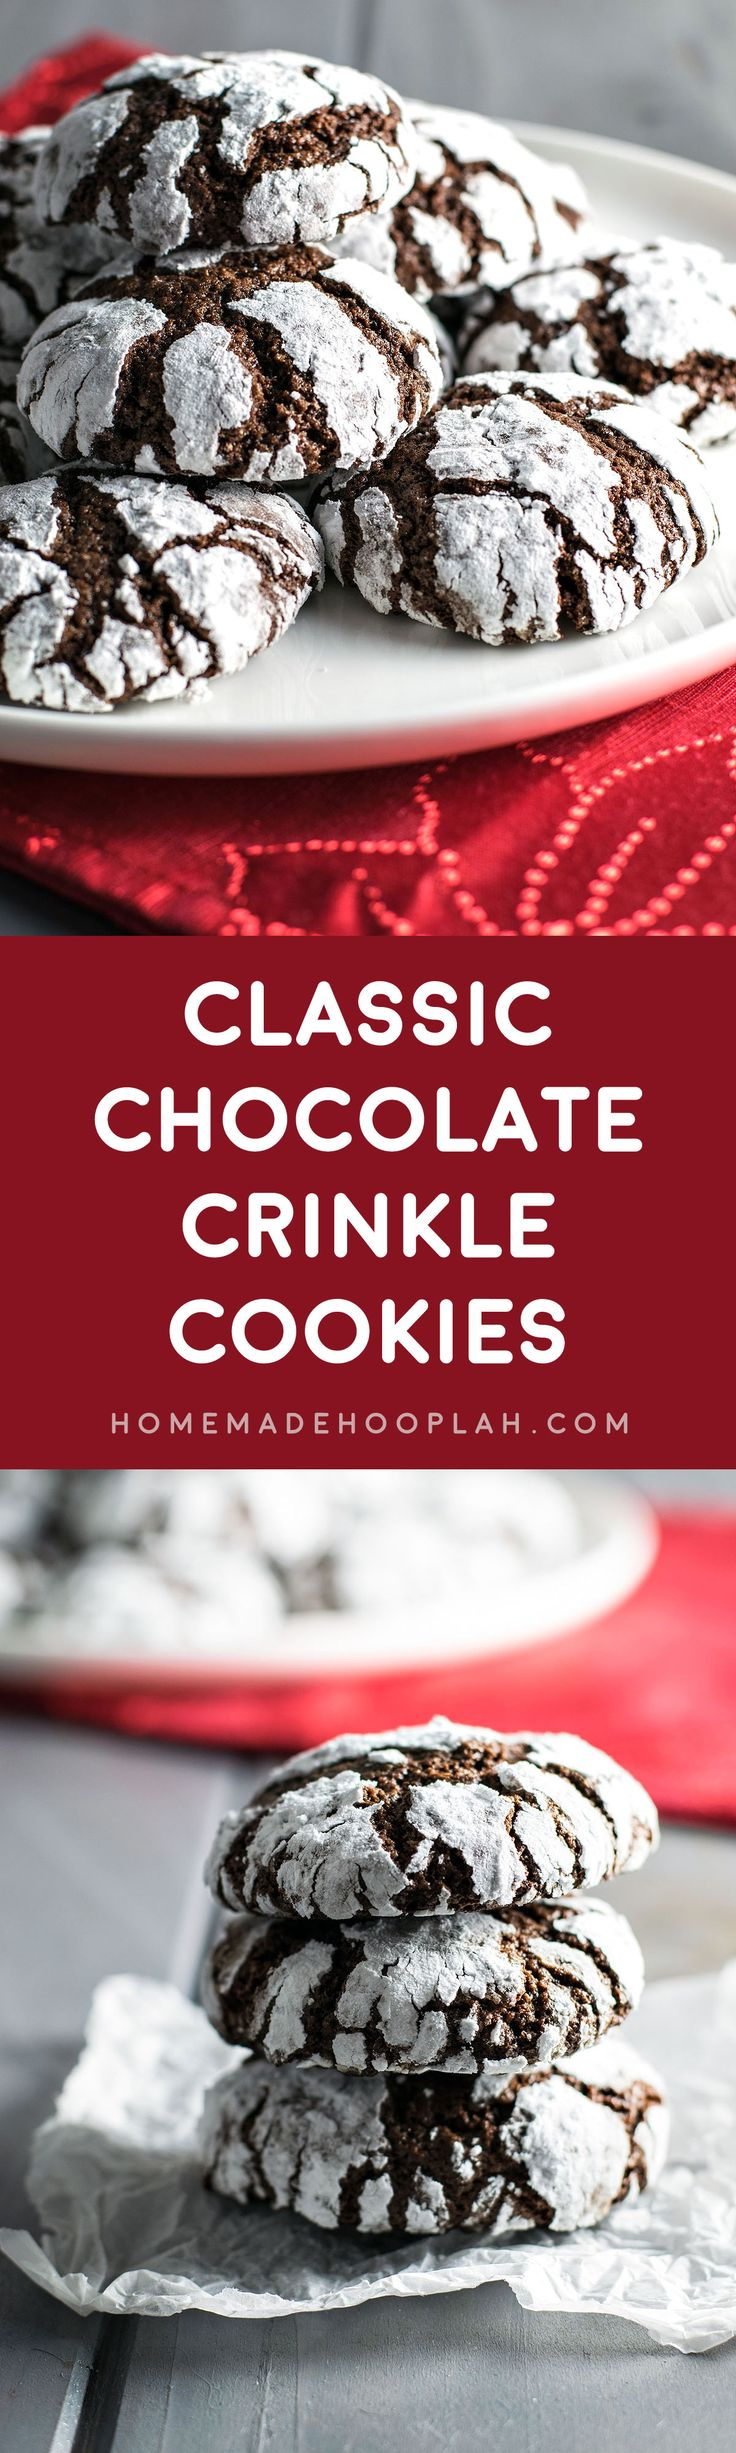 Classic Chocolate Crinkle Cookies! Light, flavorful, and crumbly chocolate crinkle cookies - they're the perfect combination of a brownie and a cookie!